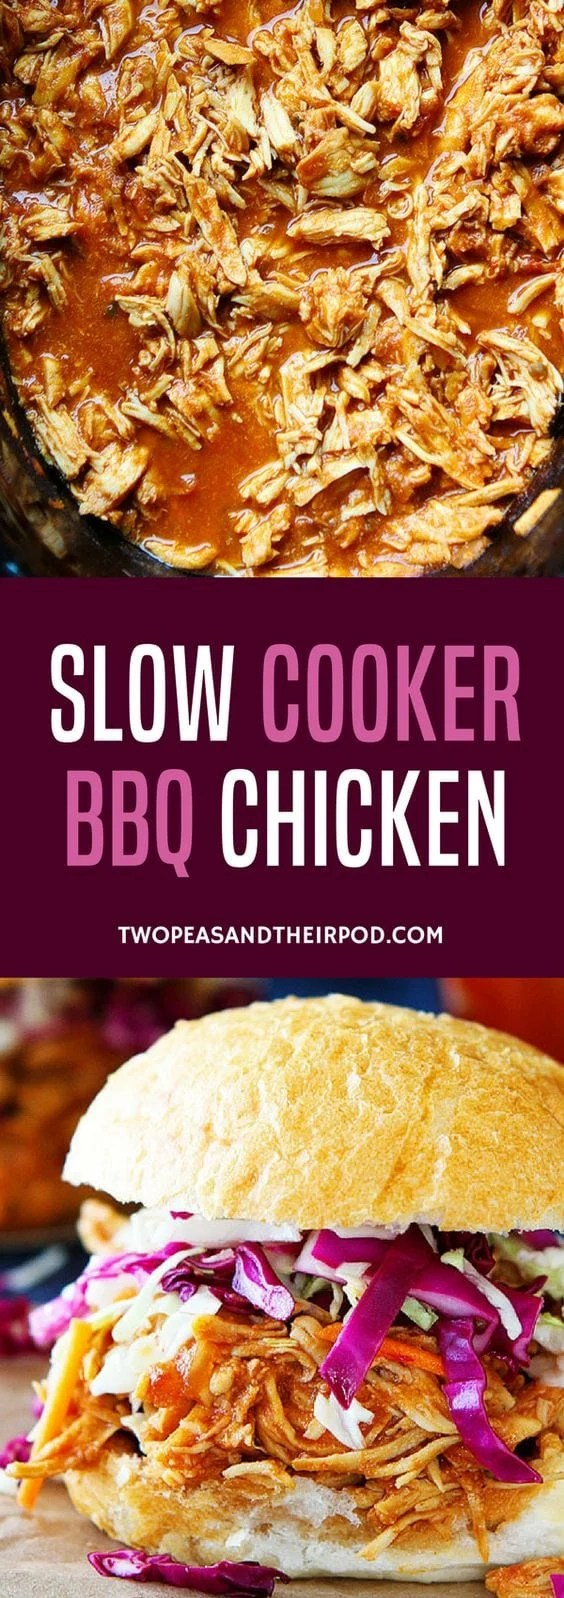 You only need 3 ingredients to make this easy Slow Cooker BBQ Chicken! This easy crockpot chicken dinner is a family favorite! #chicken #chickenrecipe #crockpot #slowcooker #easyrecipes